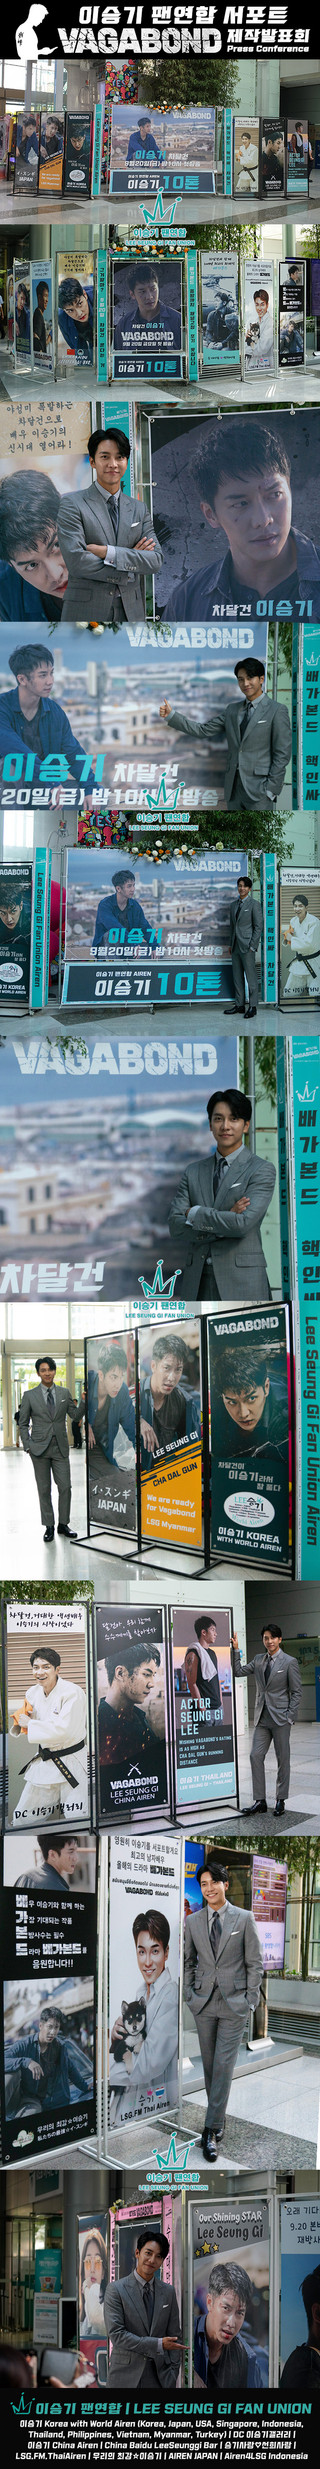 Event Summary: Vagabond Press Conference Fan Union Support